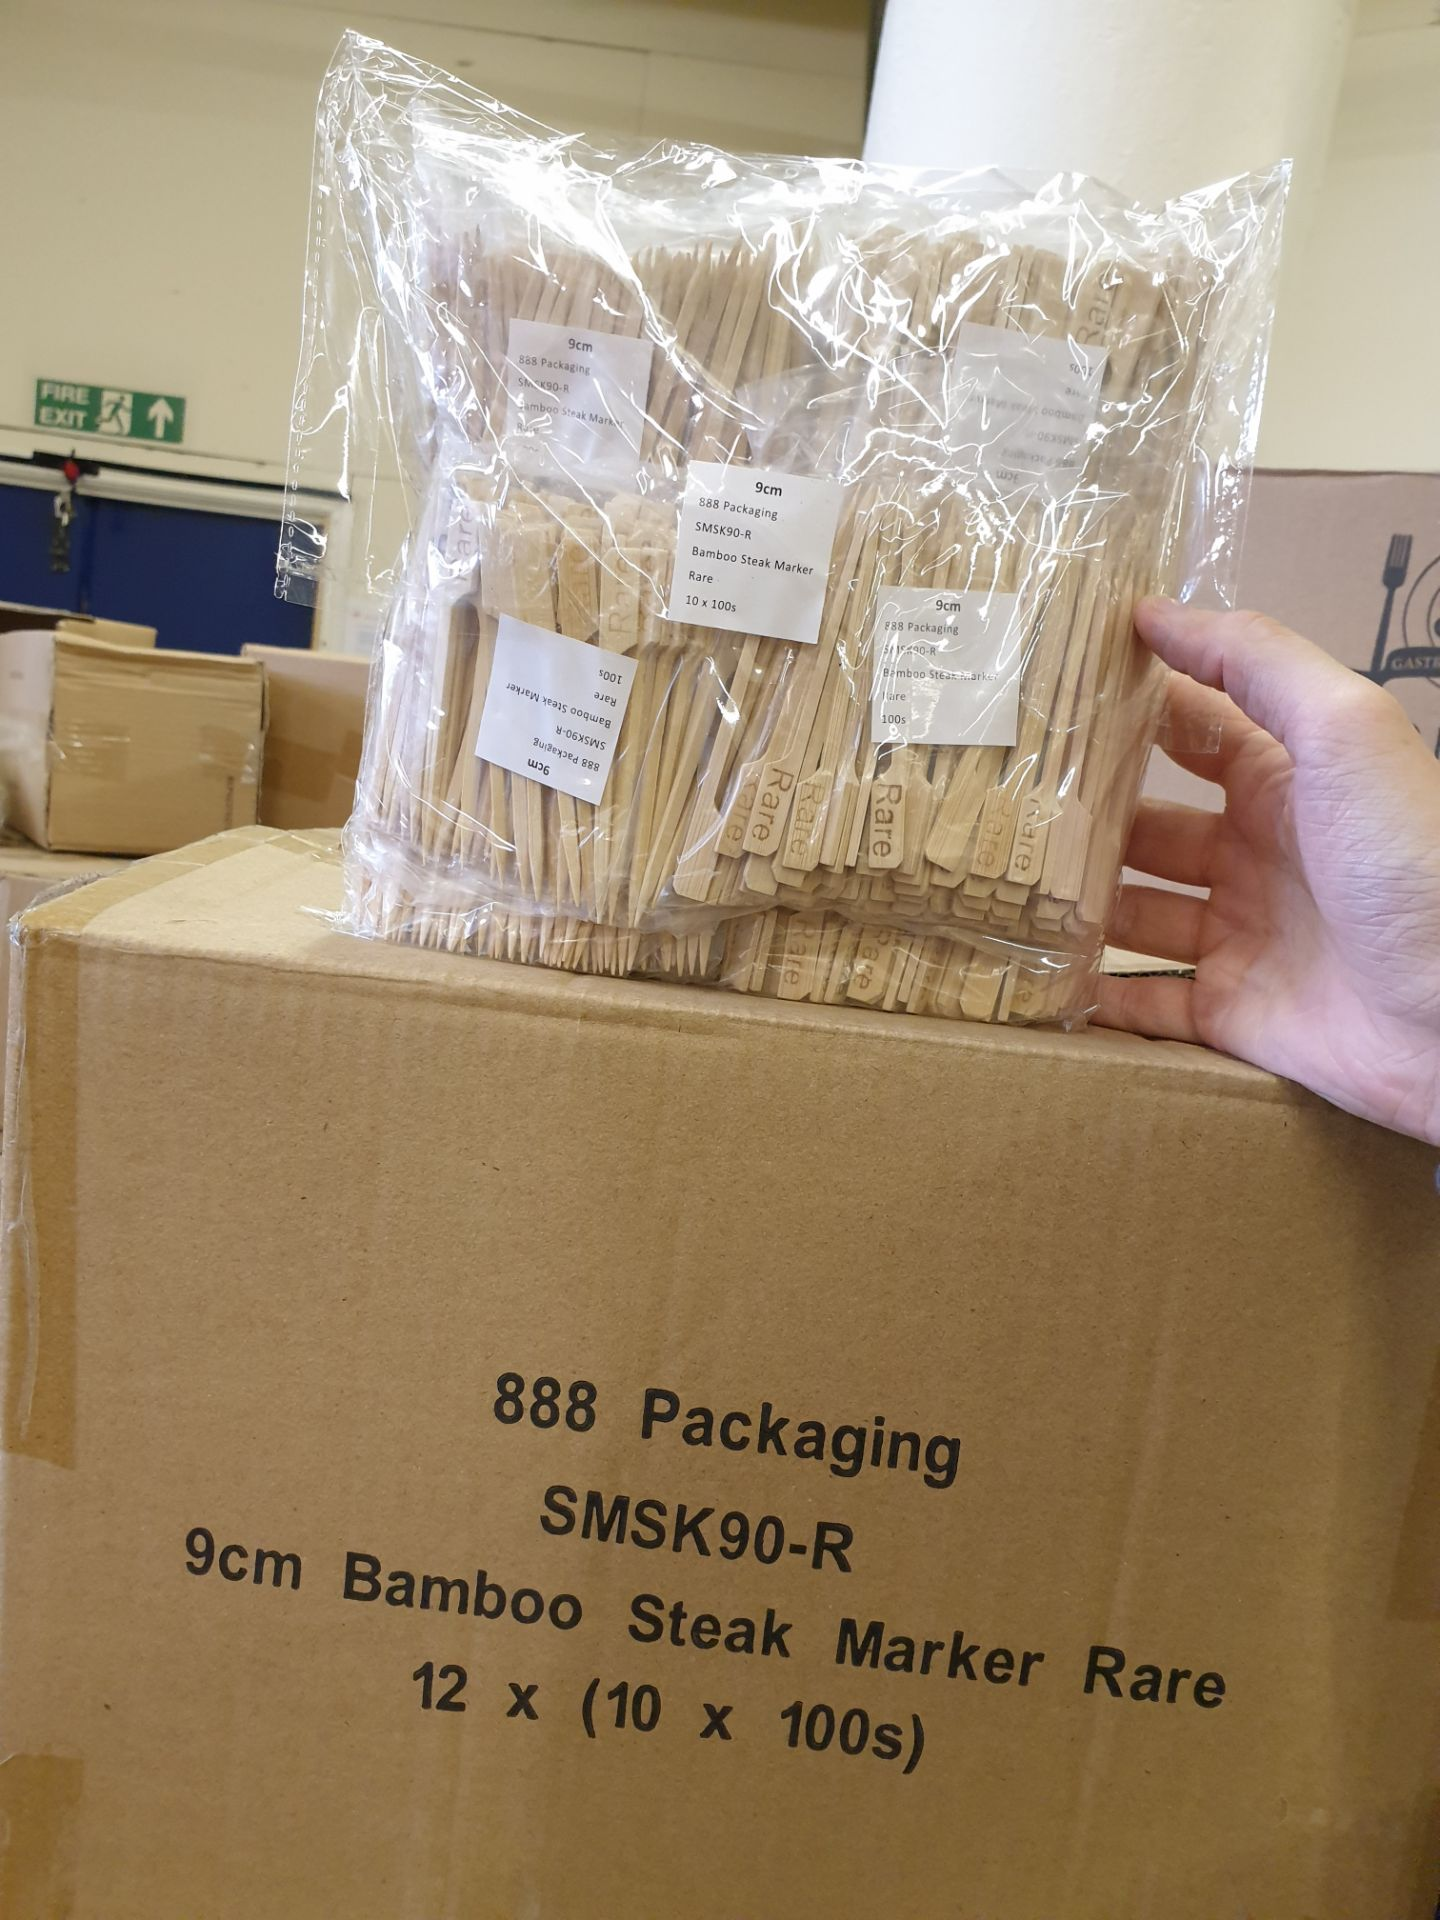 Lot 319 - 5 x Boxes of Steak Makers Rare Bags by 888 Gastro Disposable